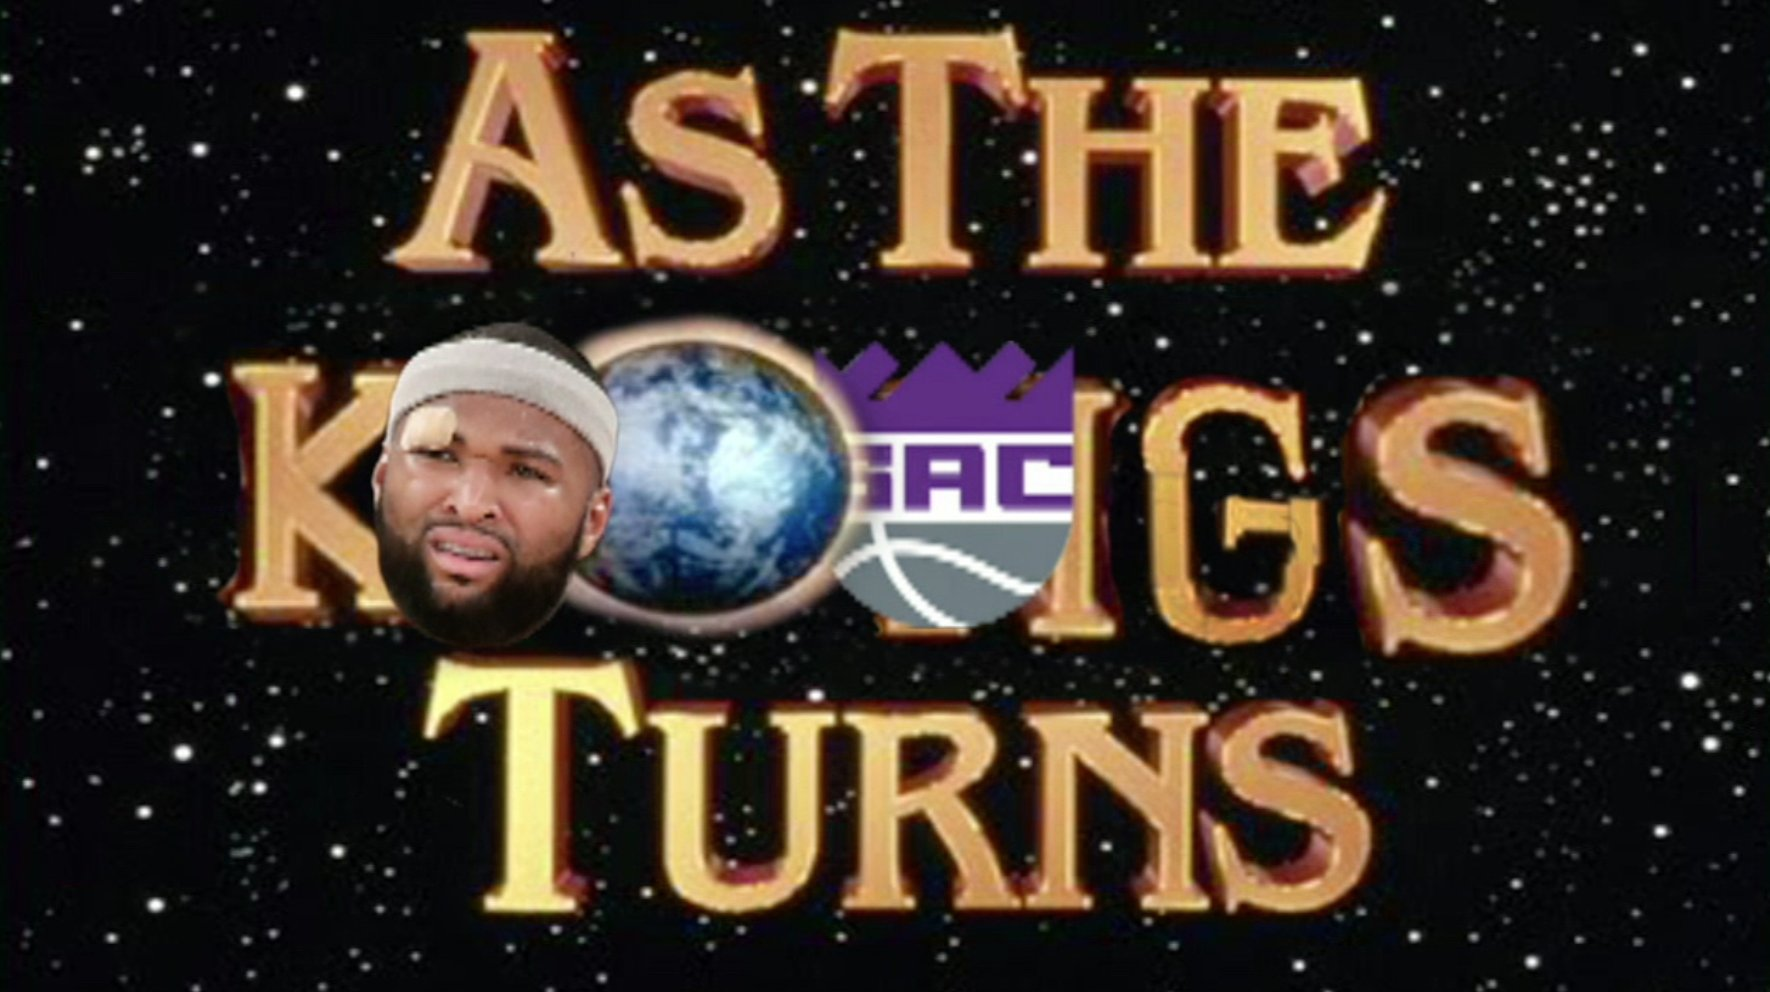 Is it wise for Boogie to consider sticking with the Kings long-term?  https://t.co/anR3vRoHeC https://t.co/UkvcO6uncq